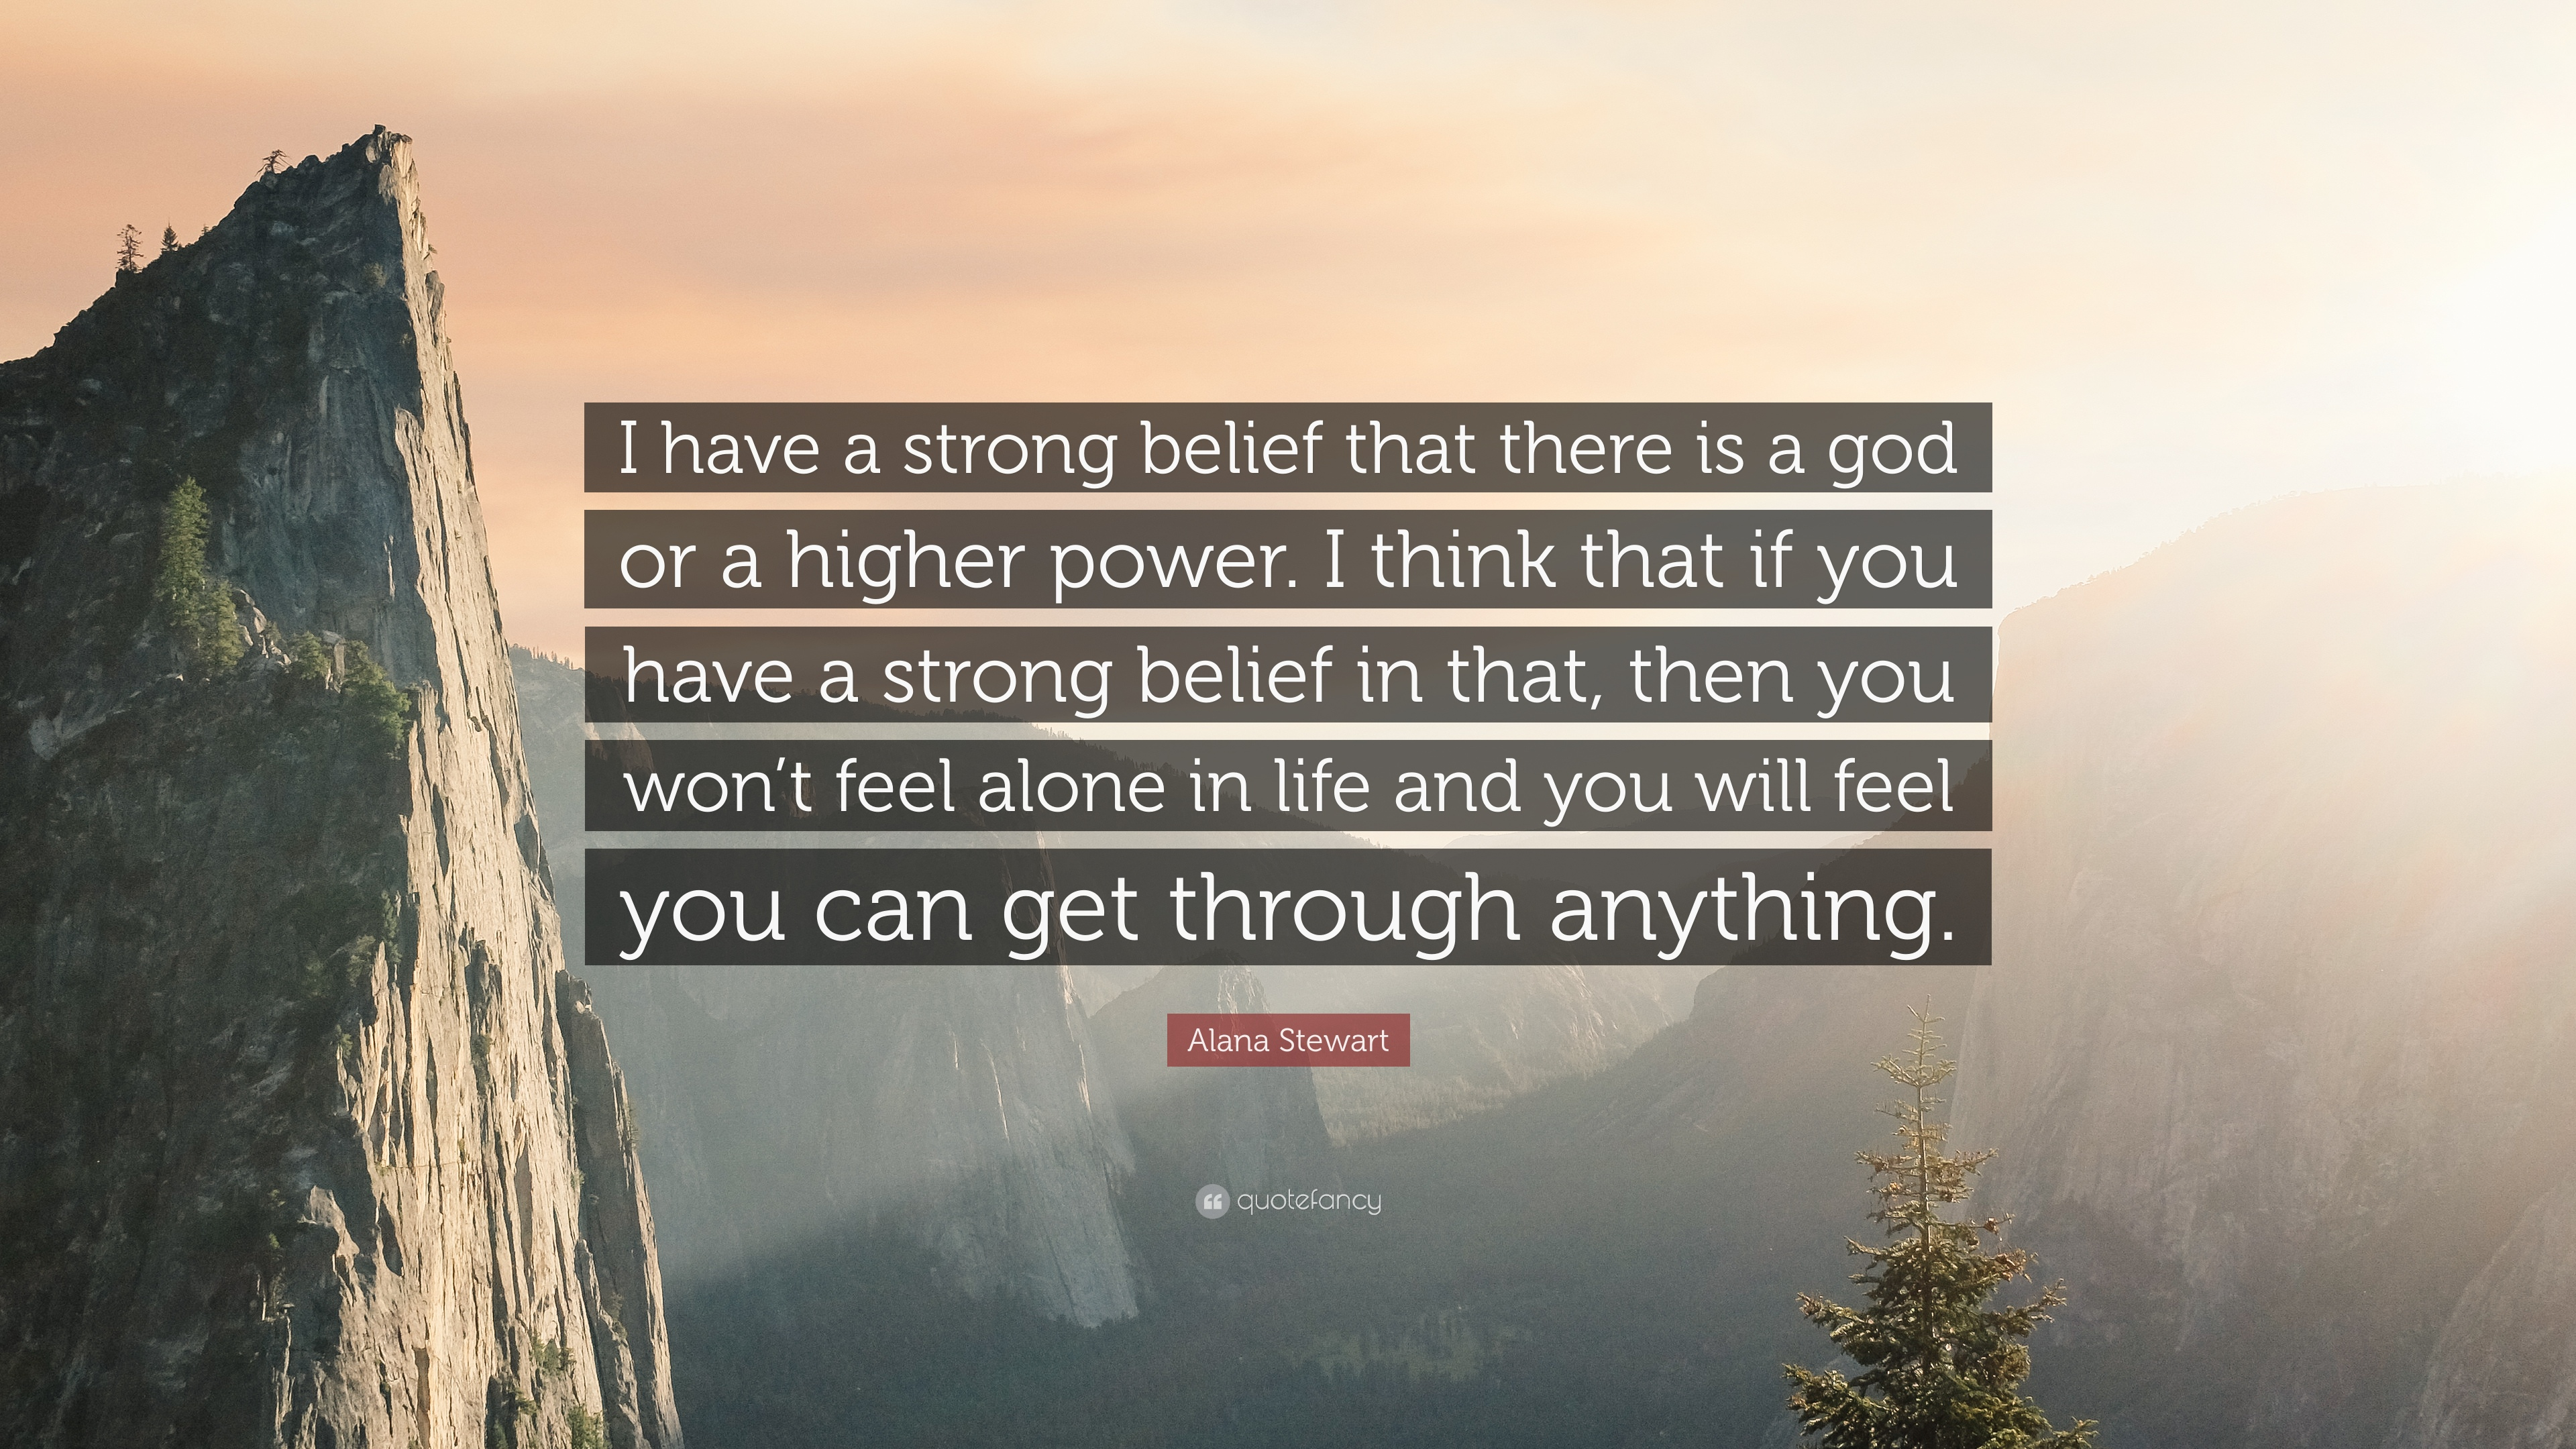 Alana Stewart Quote: U201cI Have A Strong Belief That There Is A God Or